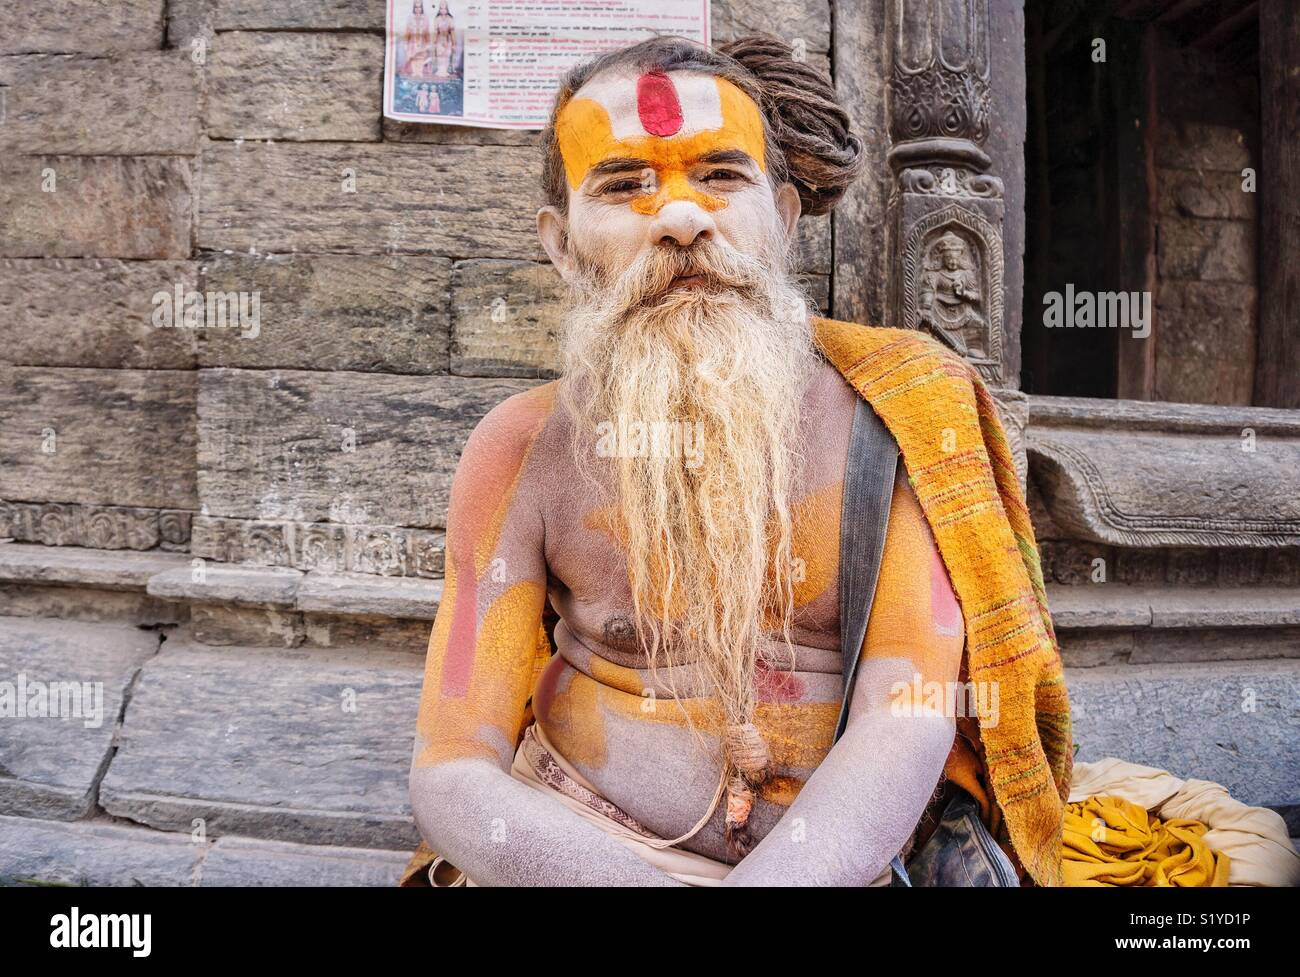 A sadhu who has decided to leave all material attachments and dedicate his life to achieving spiritual liberation. - Stock Image